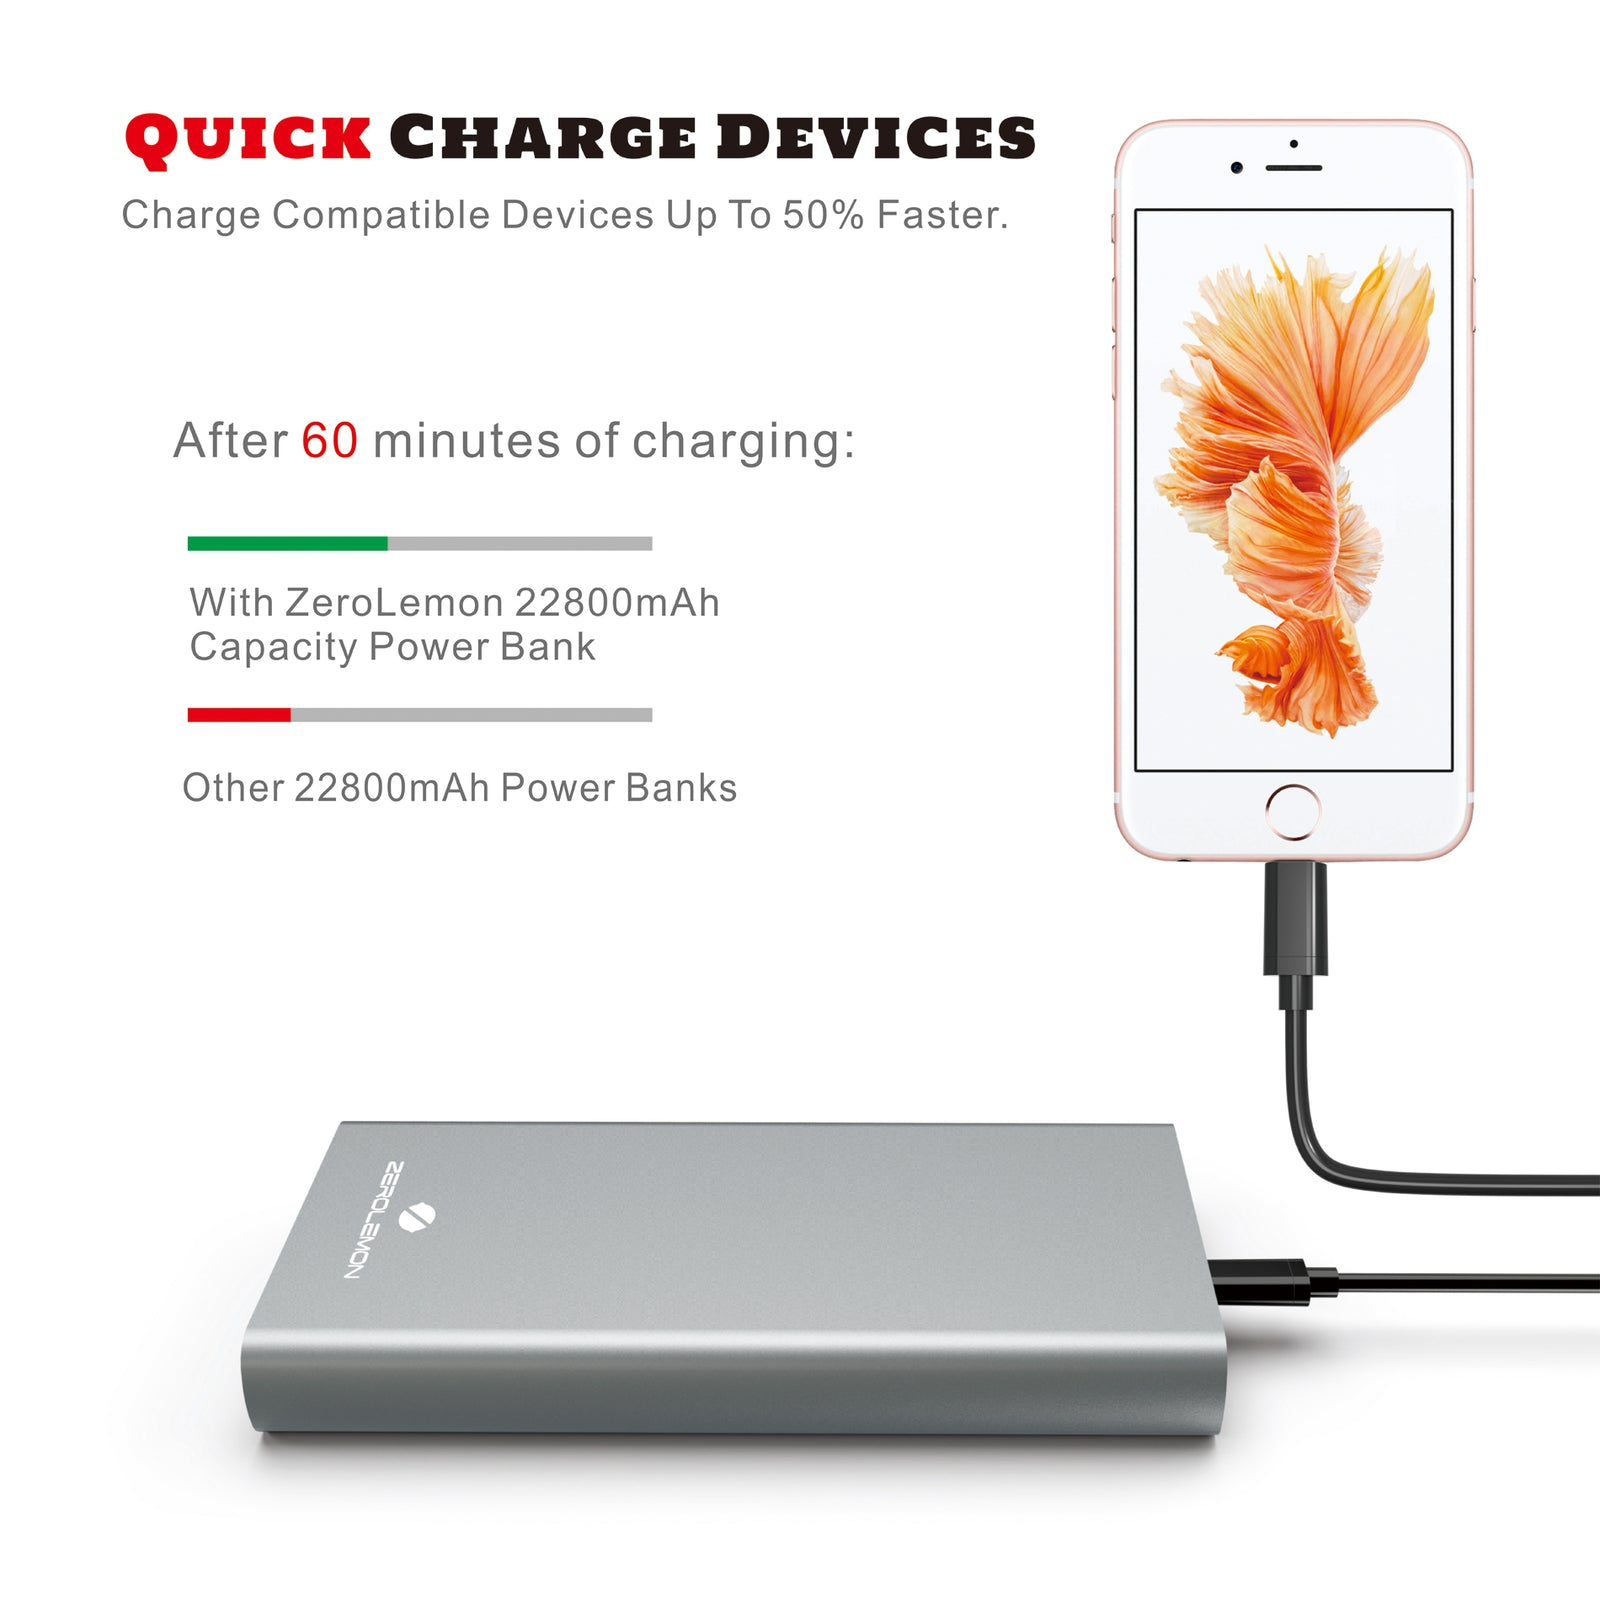 Lightest Power Bank 22800mAh Fast Charger [Shipping to US Only]